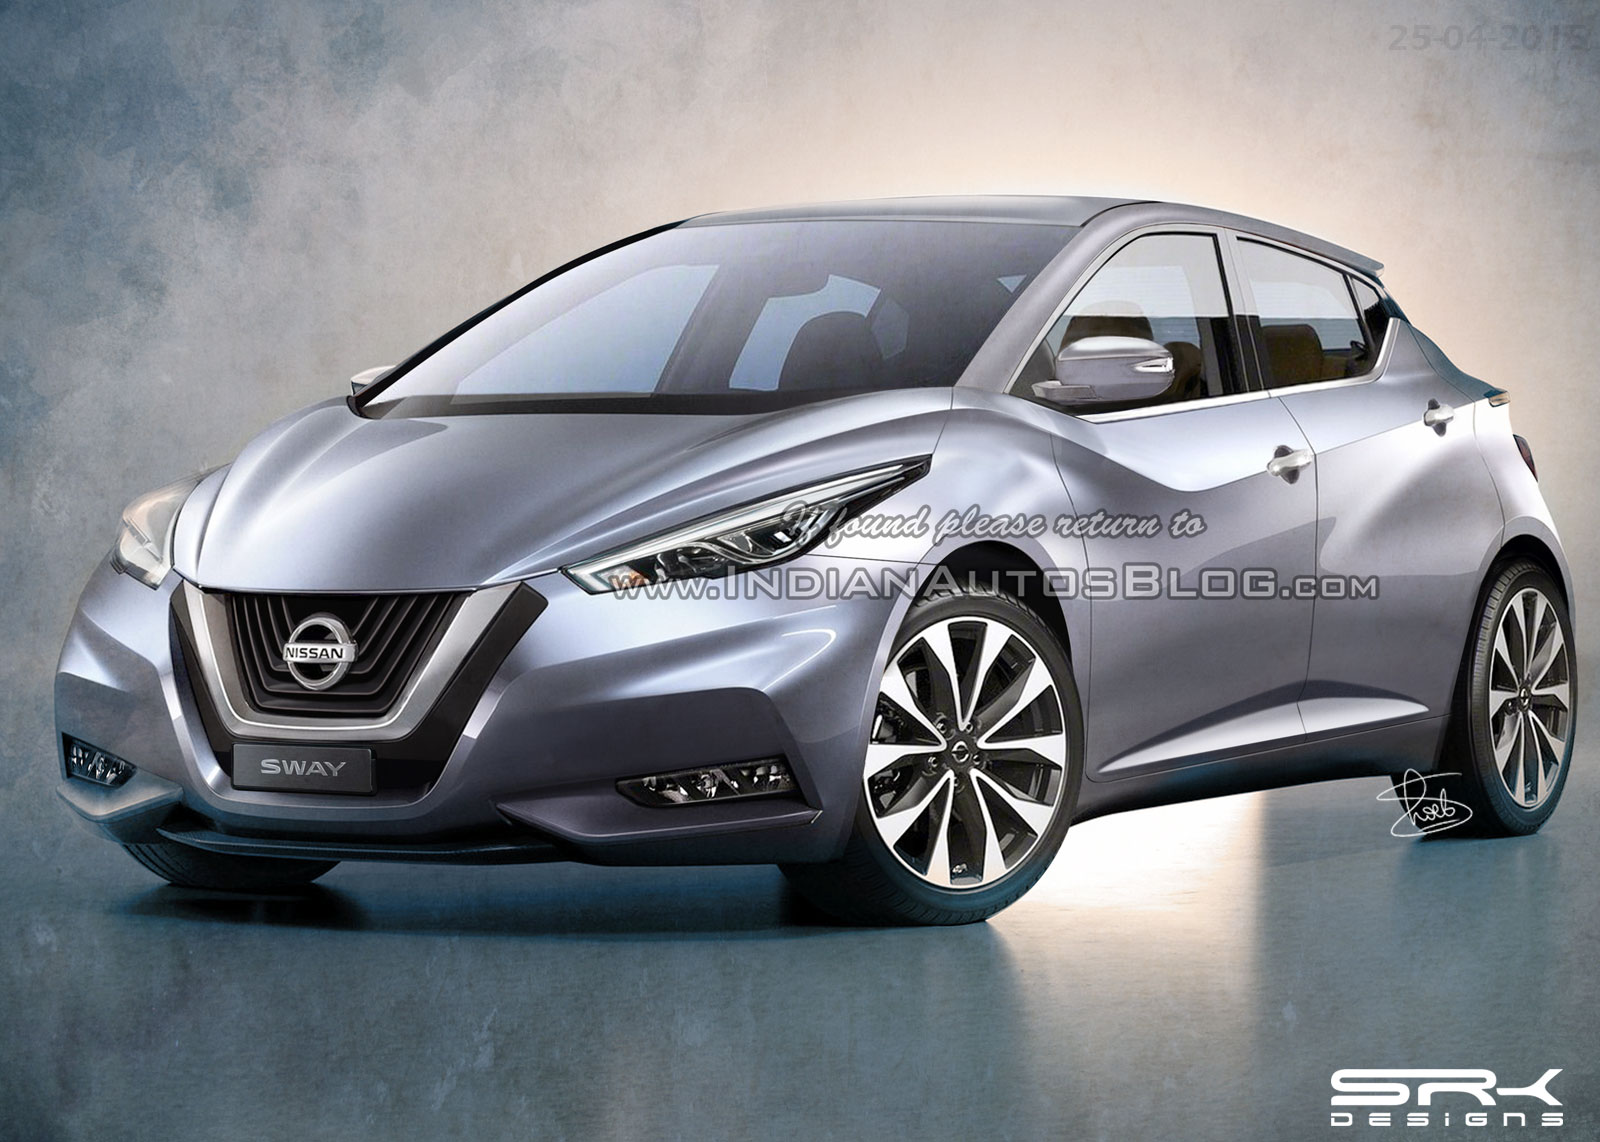 2017 Nissan Micra/Nissan Sway production version rendered